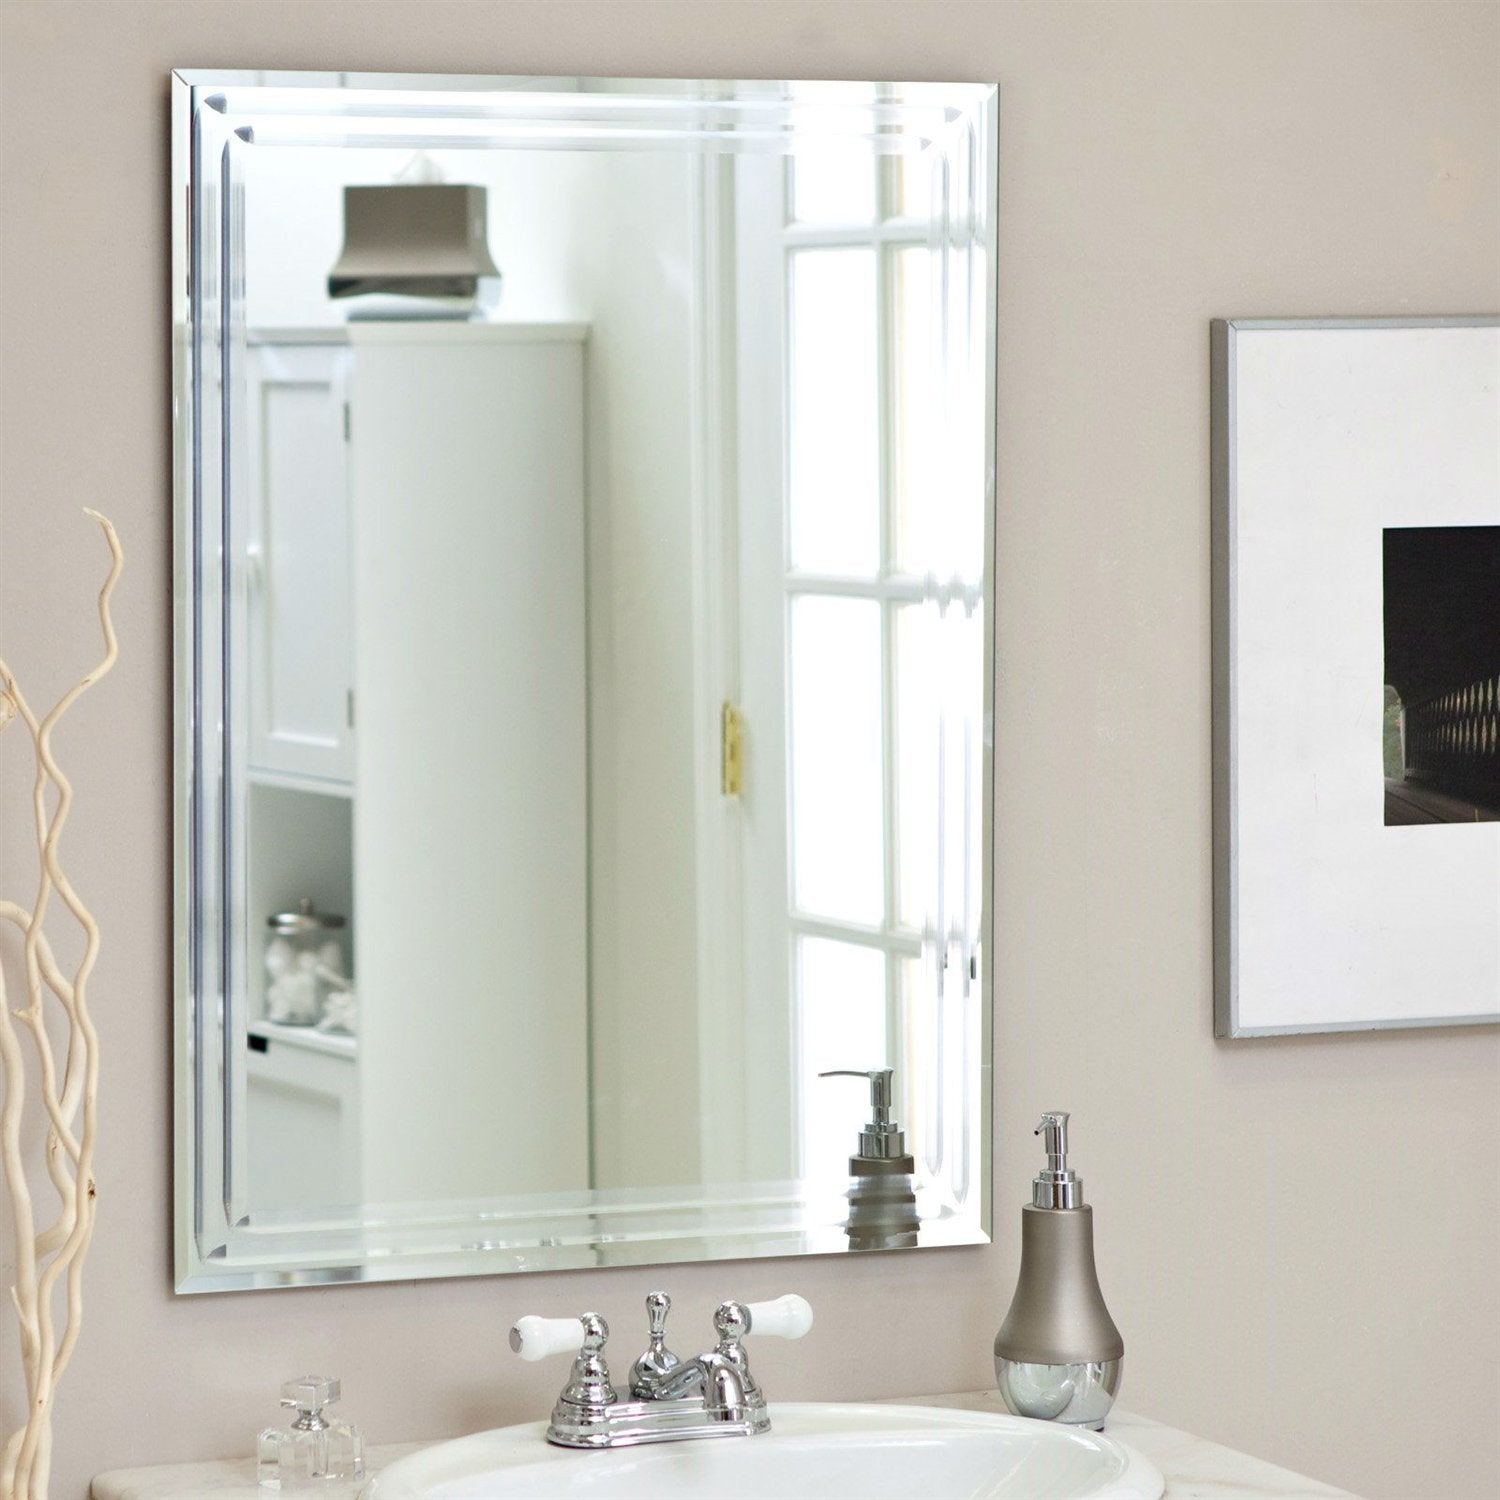 Rectangular 31.5-inch Bathroom Vanity Wall Mirror w/ Triple-Bevel Design